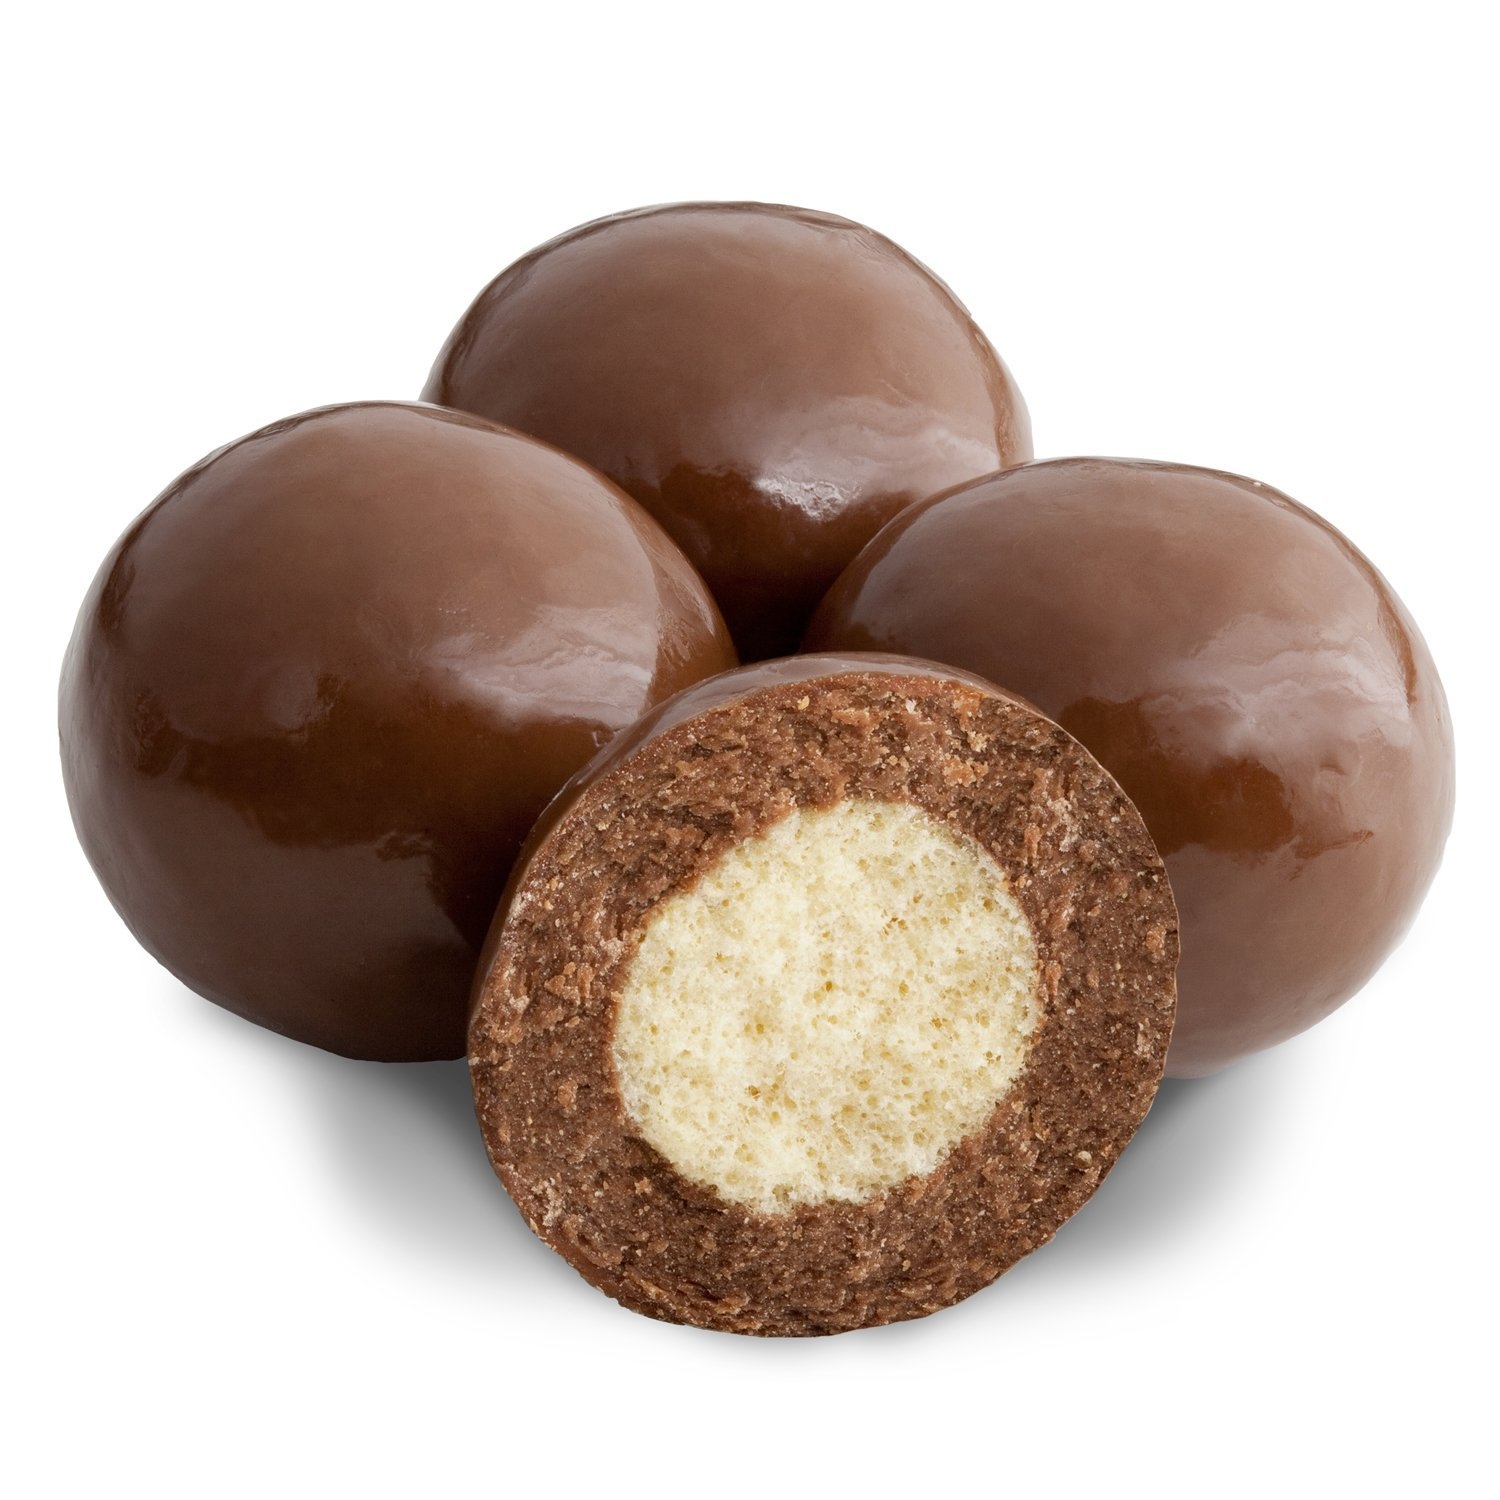 Premium Milk Chocolate Covered Candies (Triple Dipped Malted Milk Balls) Two Packages